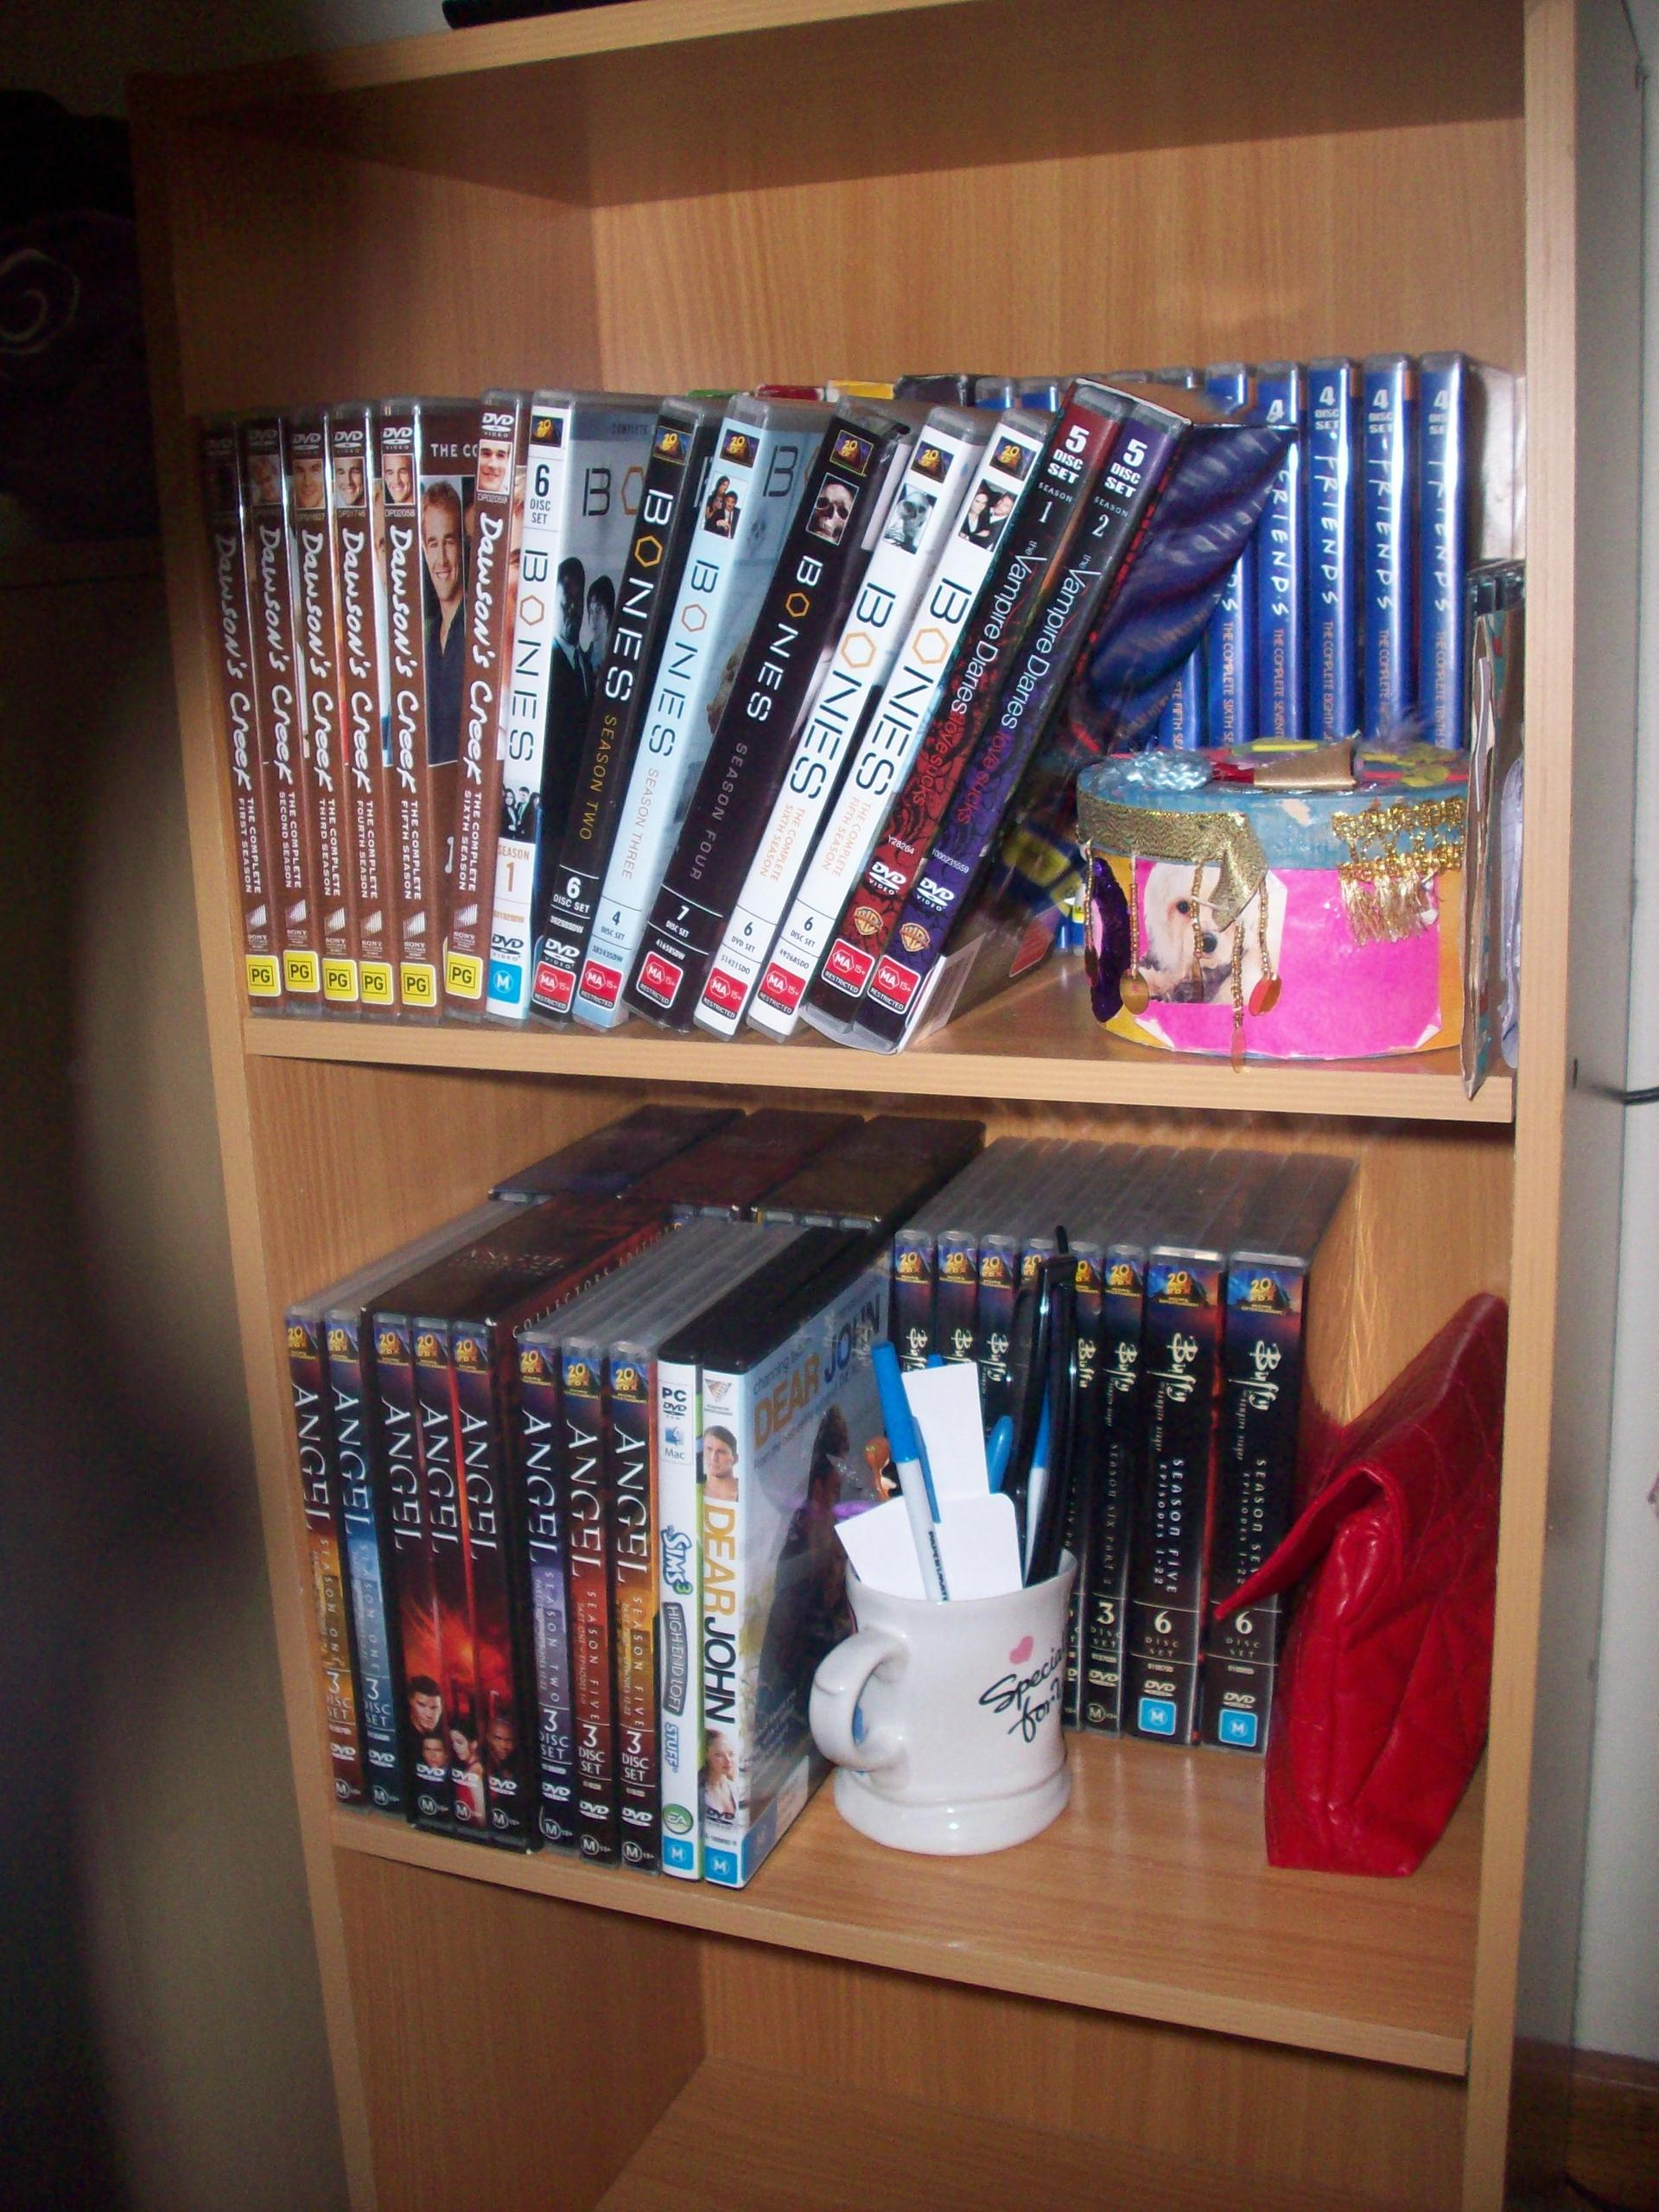 Just wanted to share my DVD collection with you guys :)